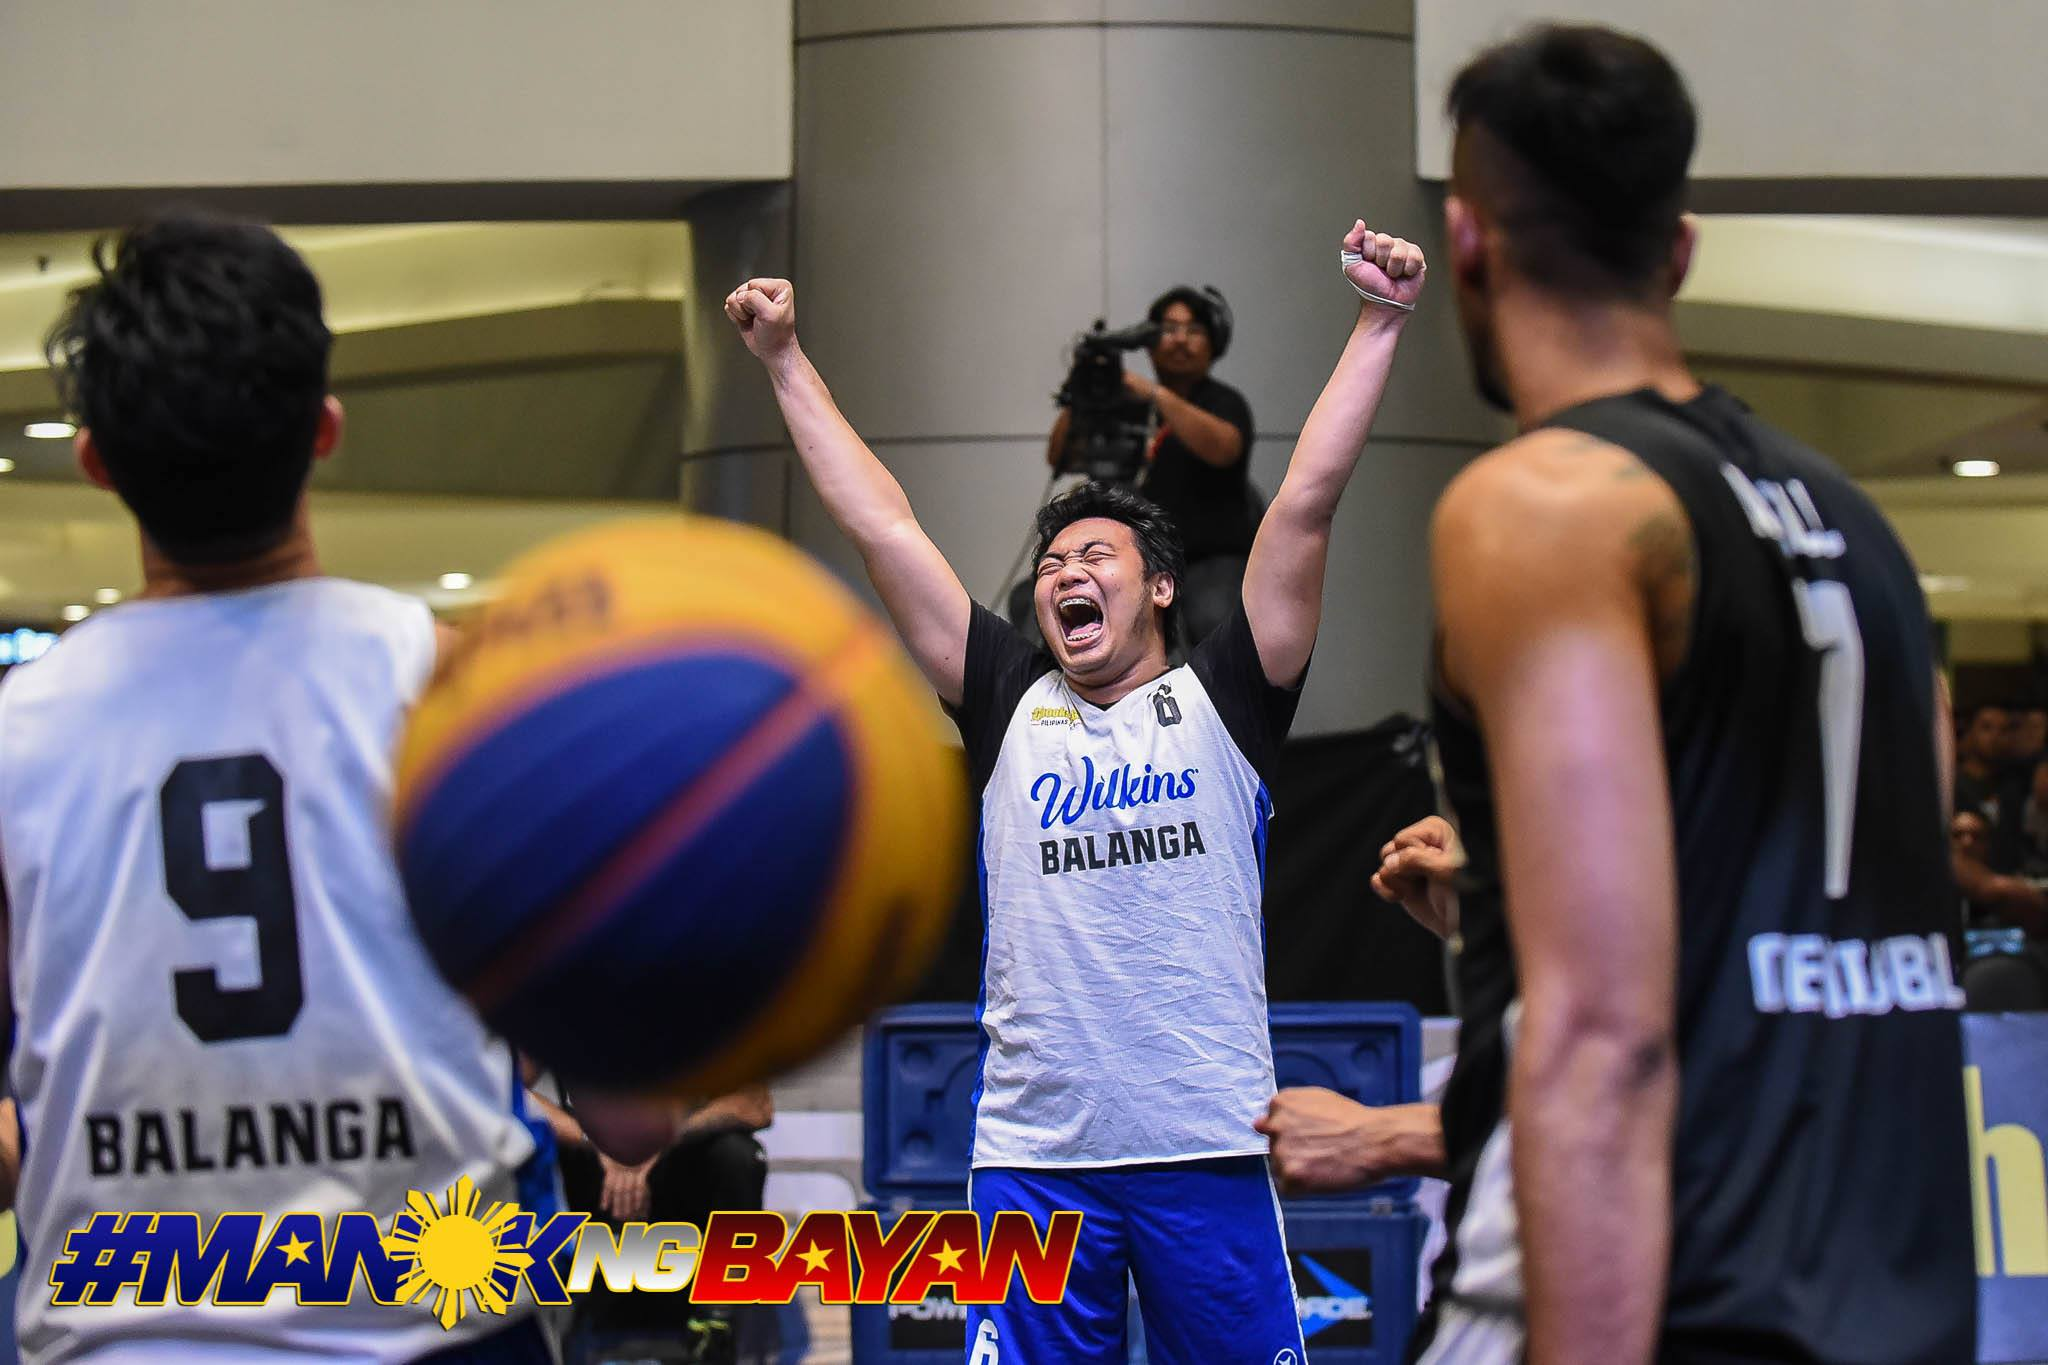 Tiebreaker Times After airballing free throw in MPBL, Alvin Pasaol atones for it in Chooks 3x3 3x3 Basketball Basketball Chooks-to-Go Pilipinas 3x3 MPBL News  Wilkins Balanga Pure Bataan Risers Alvin Pasaol 2019-20 MPBL Lakan Cup 2019 Chooks-to-Go Pilipinas 3x3 Season 2019 Chooks-to-Go Pilipinas 3x3 Patriots Cup